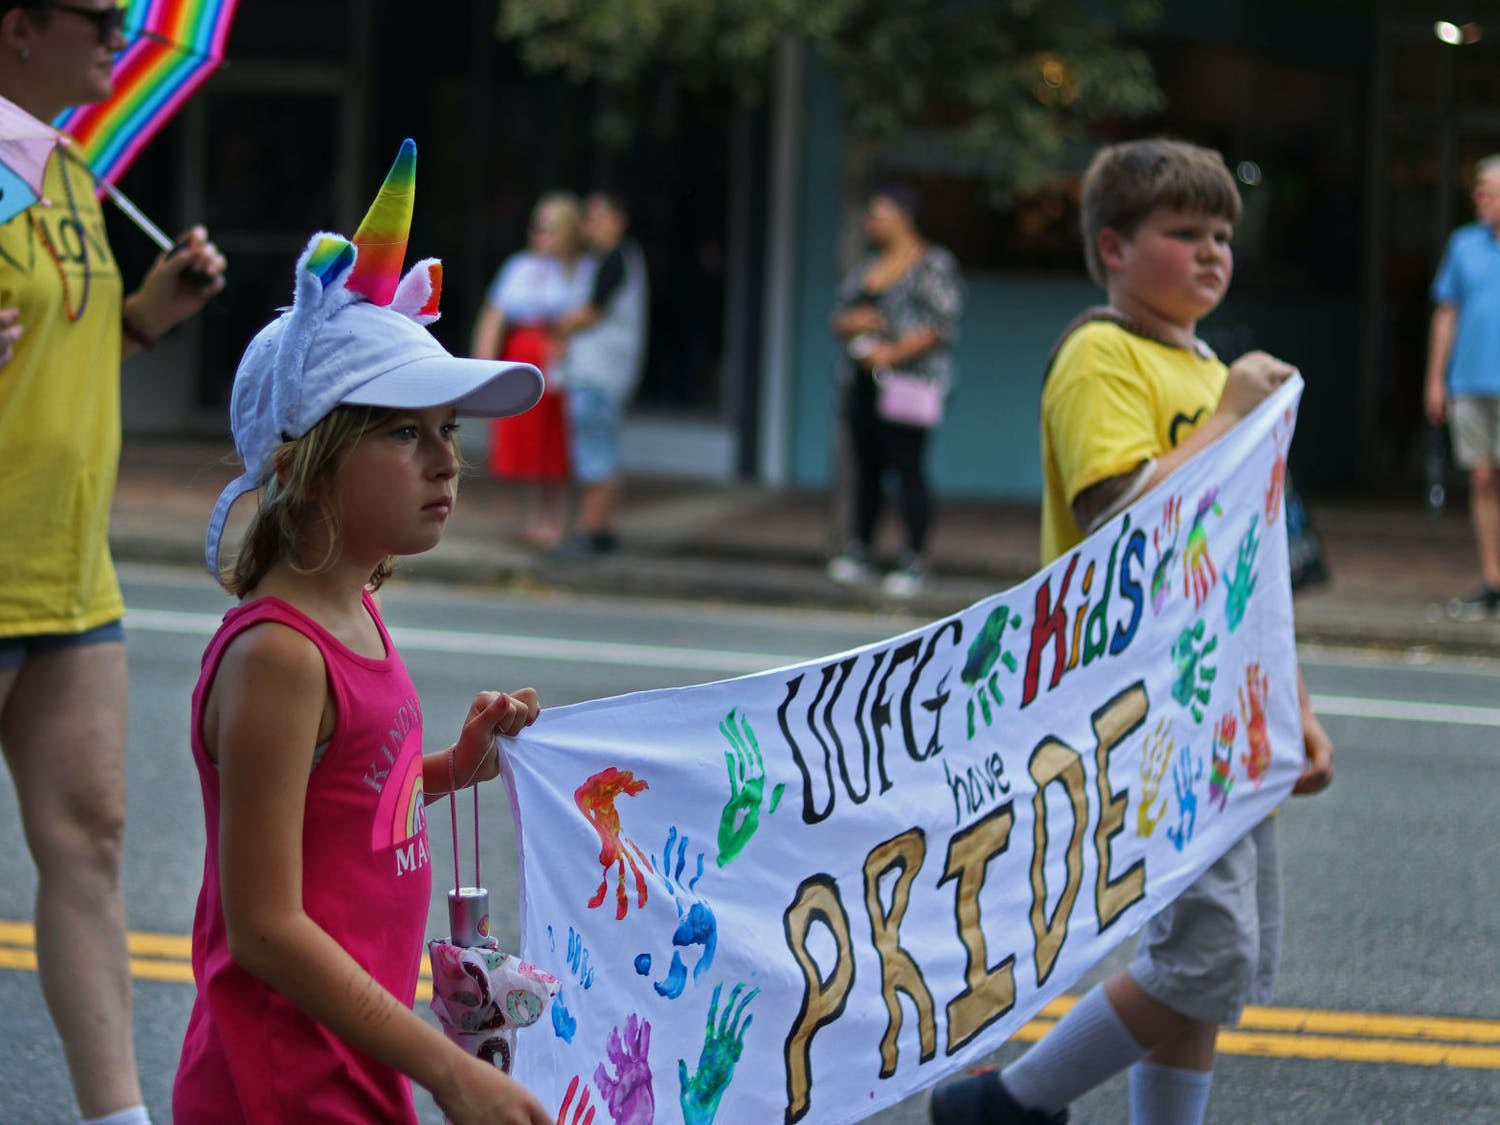 Children from the Unitarian Universalist Fellowship of Gainesville hold a banner while marching in the parade on Saturday afternoon.